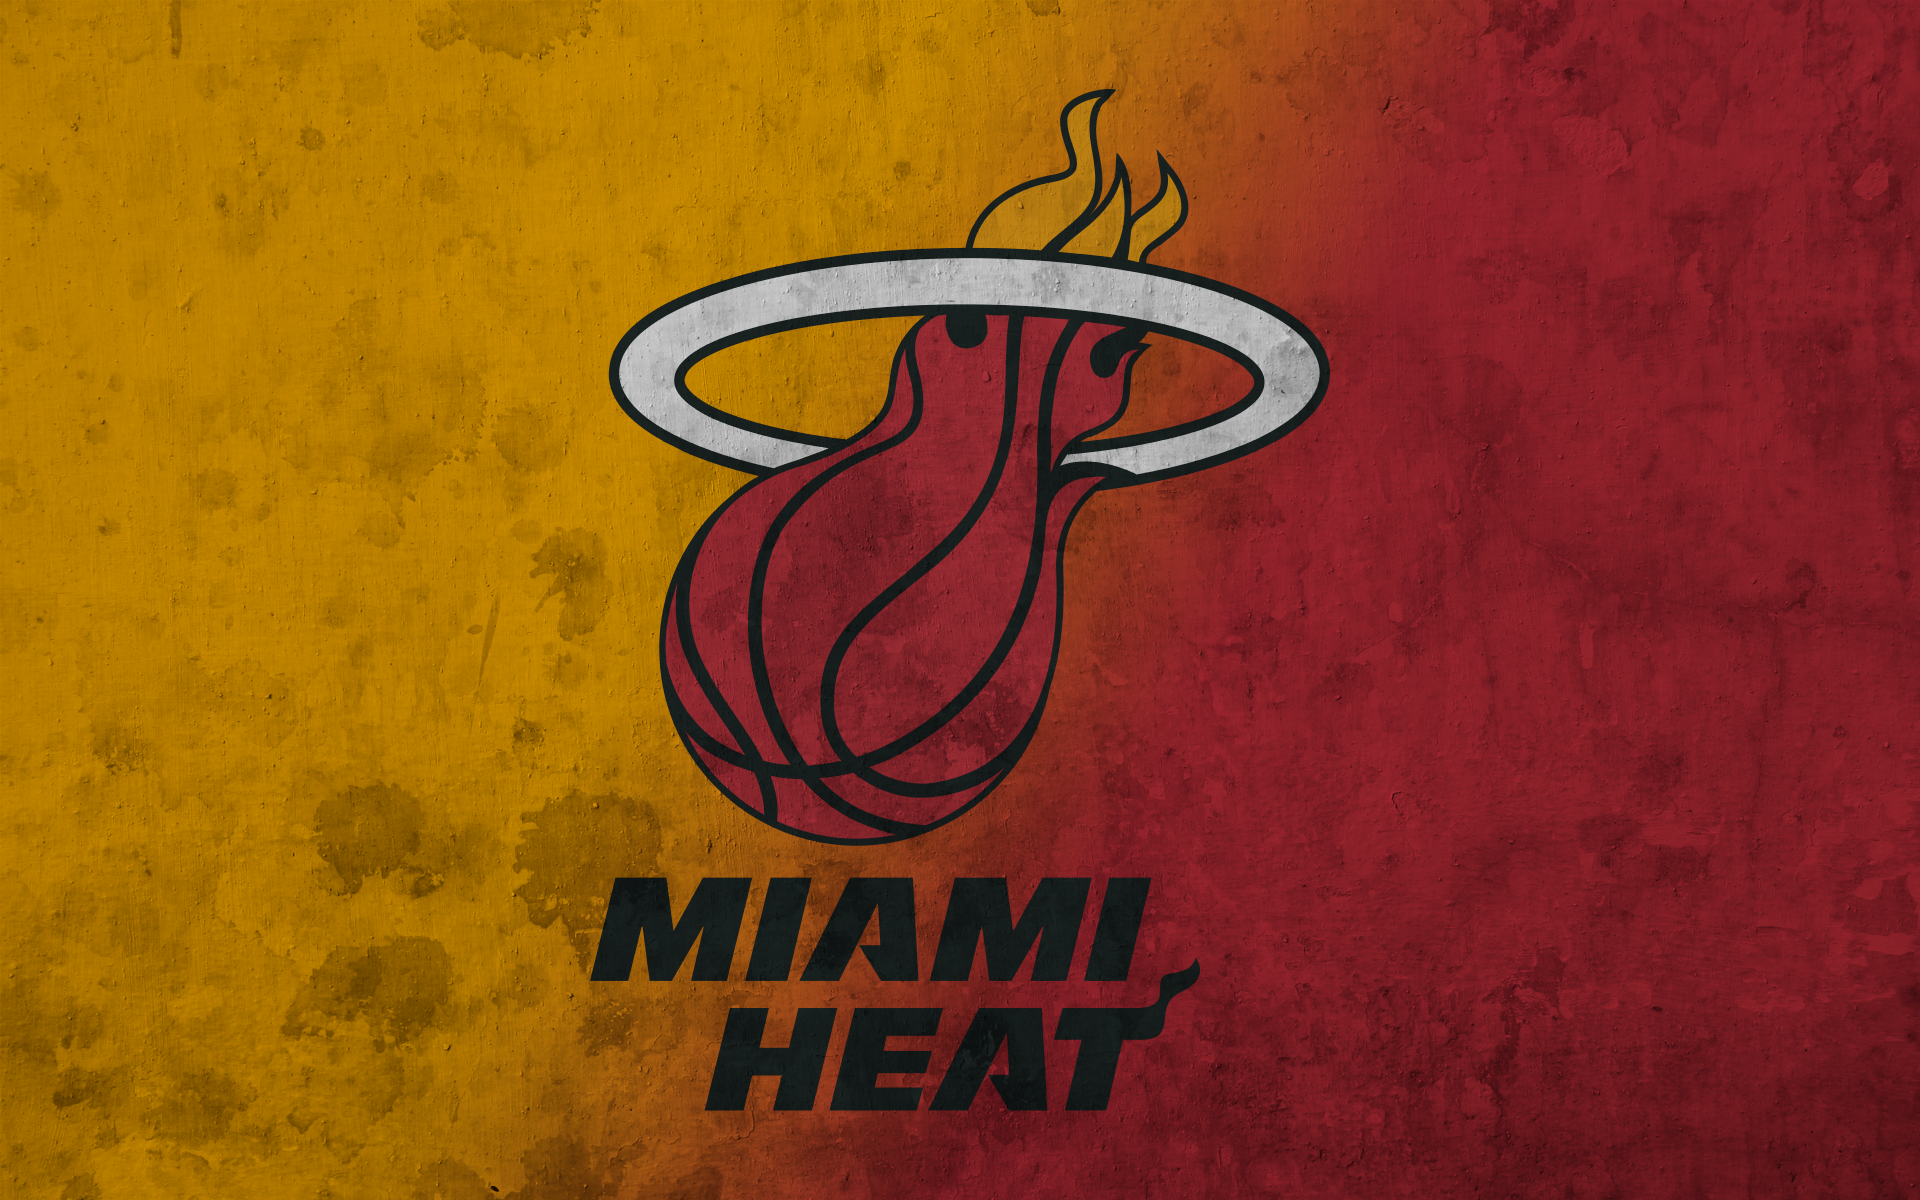 Miami Heat logo wallpaper by uLiveBeef heat 1920x1200